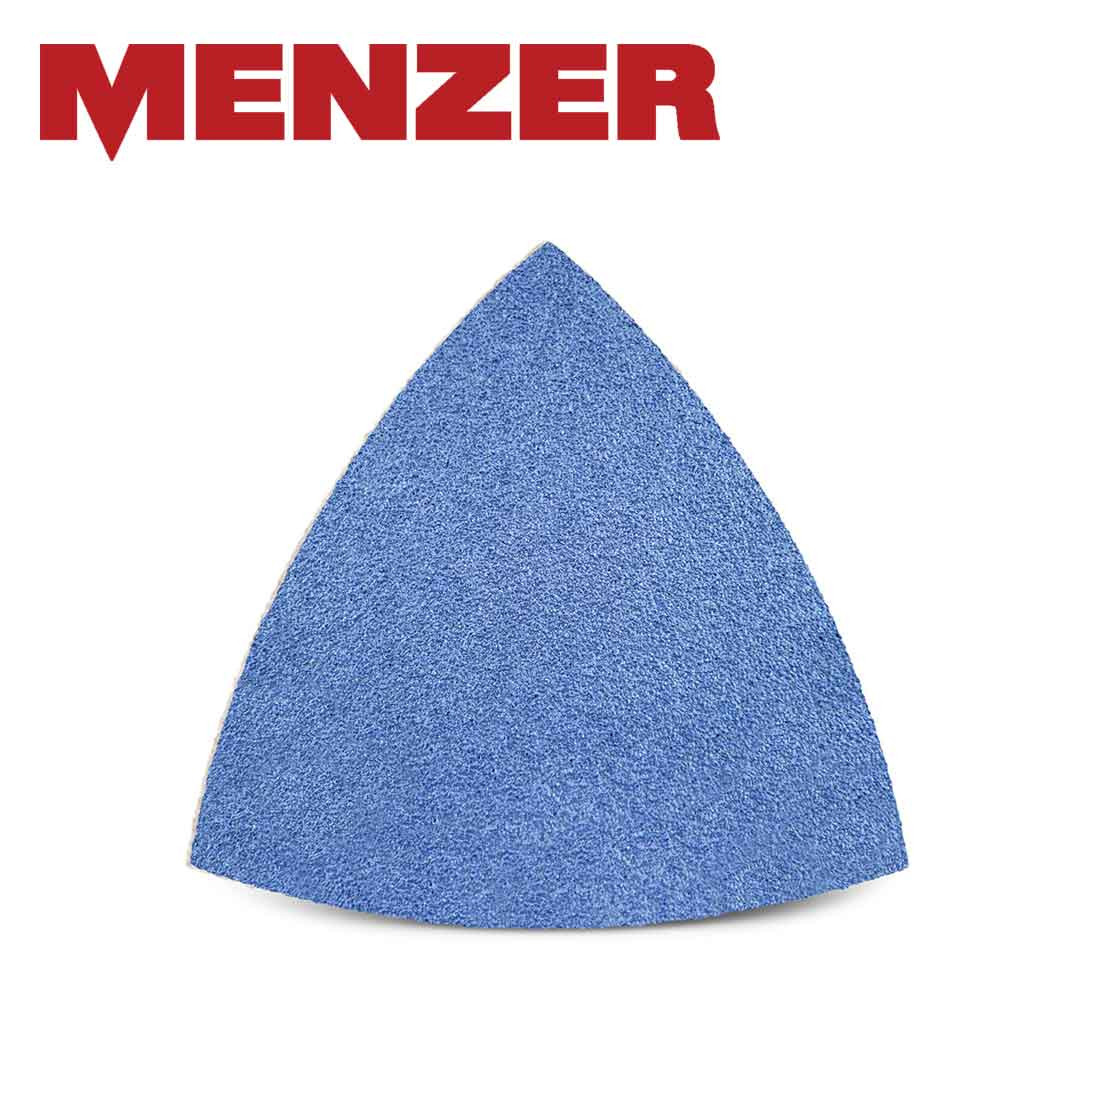 MENZER hook & loop sanding sheets, G24–120